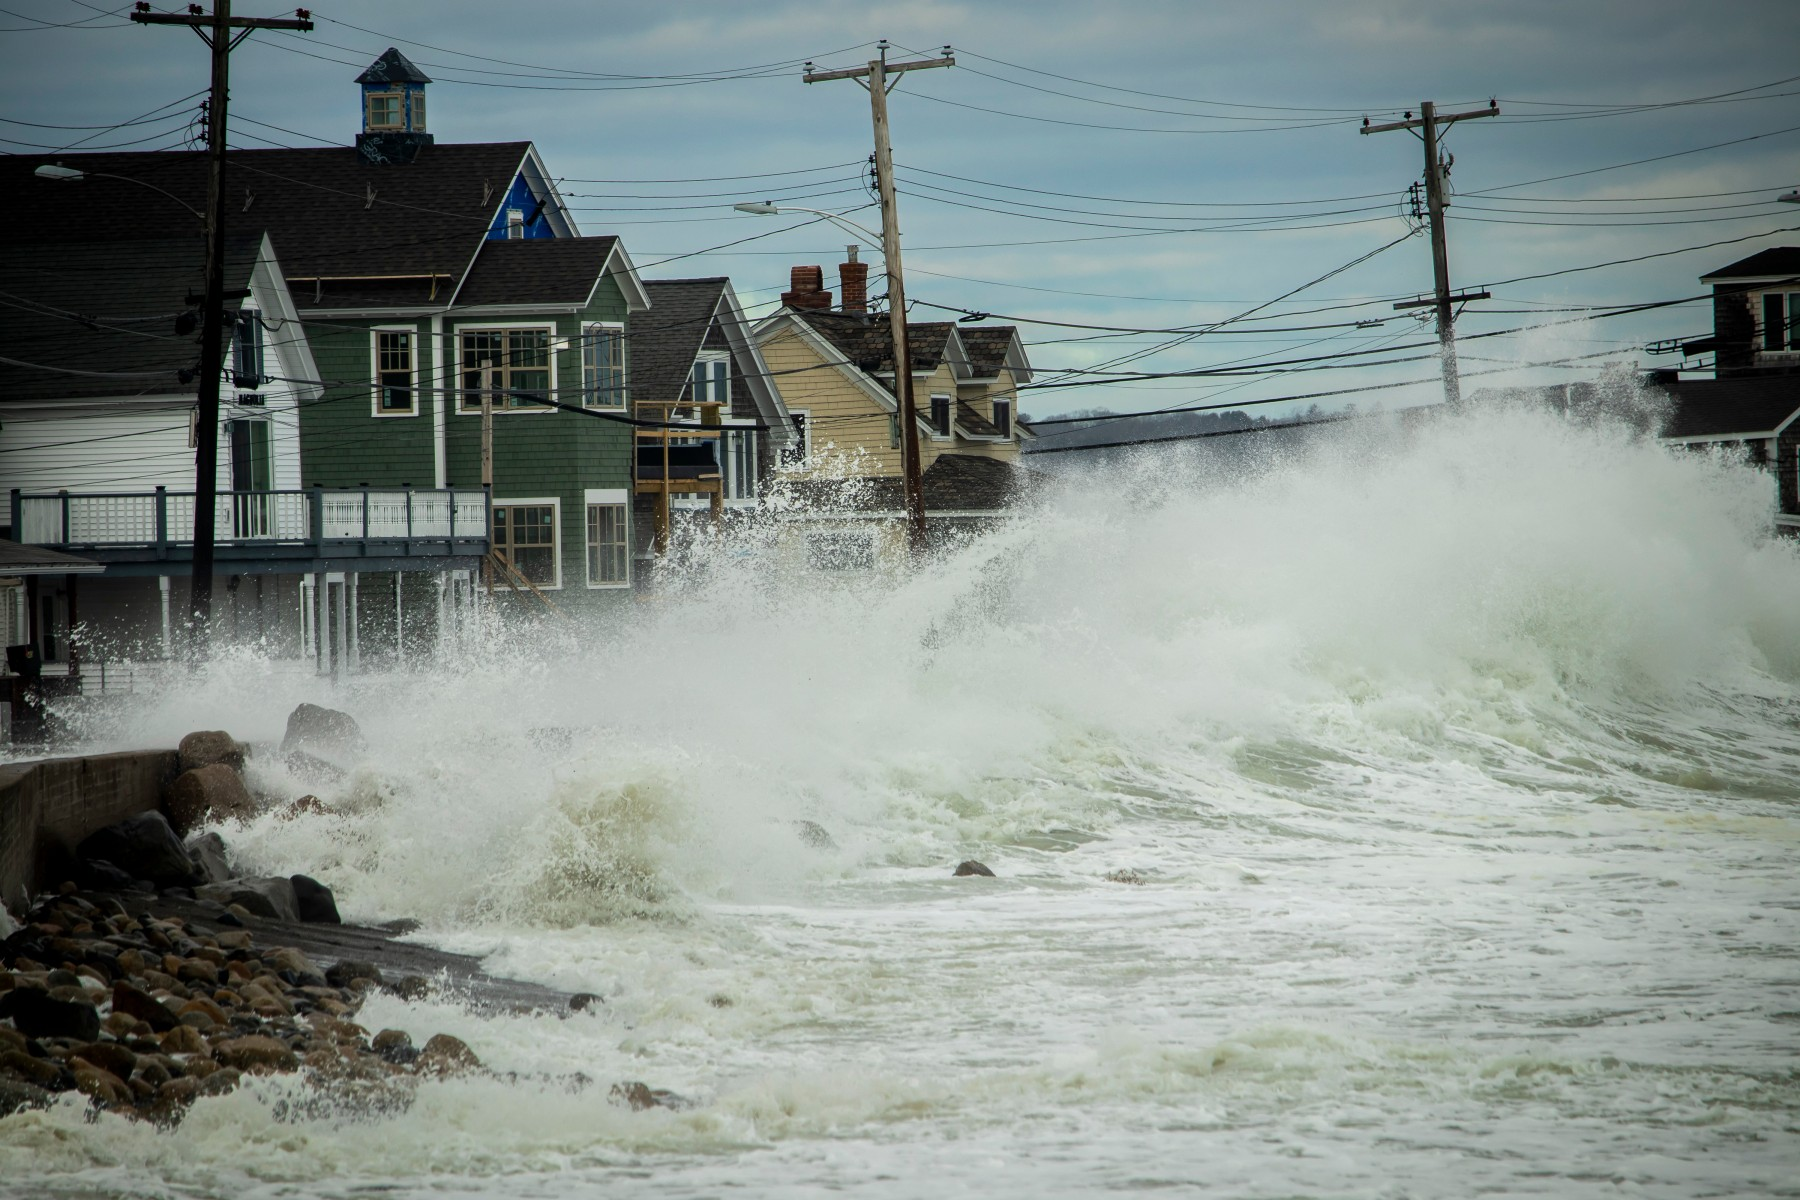 Much of the climate change adaptation research to date has focused on household-level responses to hazards like this 2019 storm surge that led to coastal flooding in southern Maine.